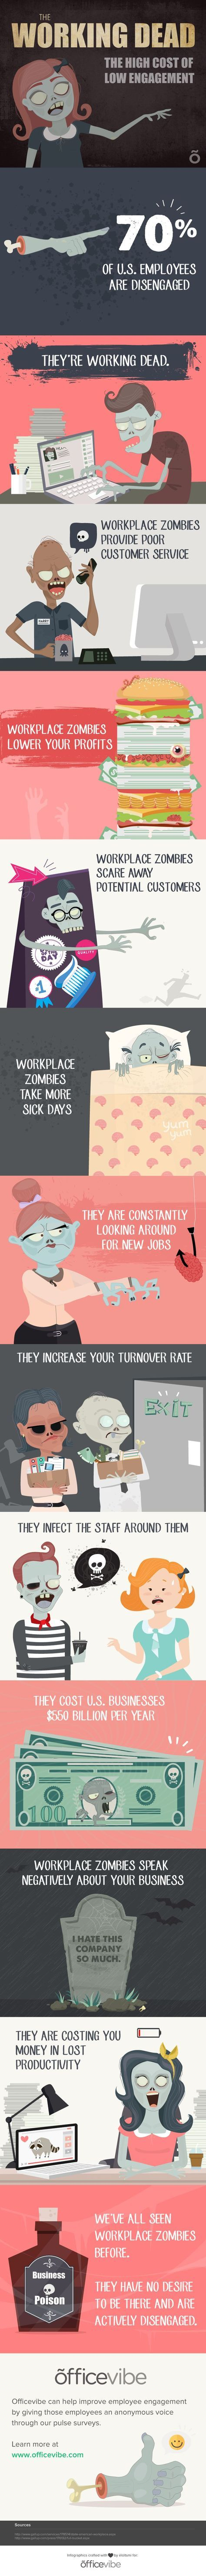 The Working Dead: The High Cost of Low Engagement // Great Halloween-themed HR infographic!